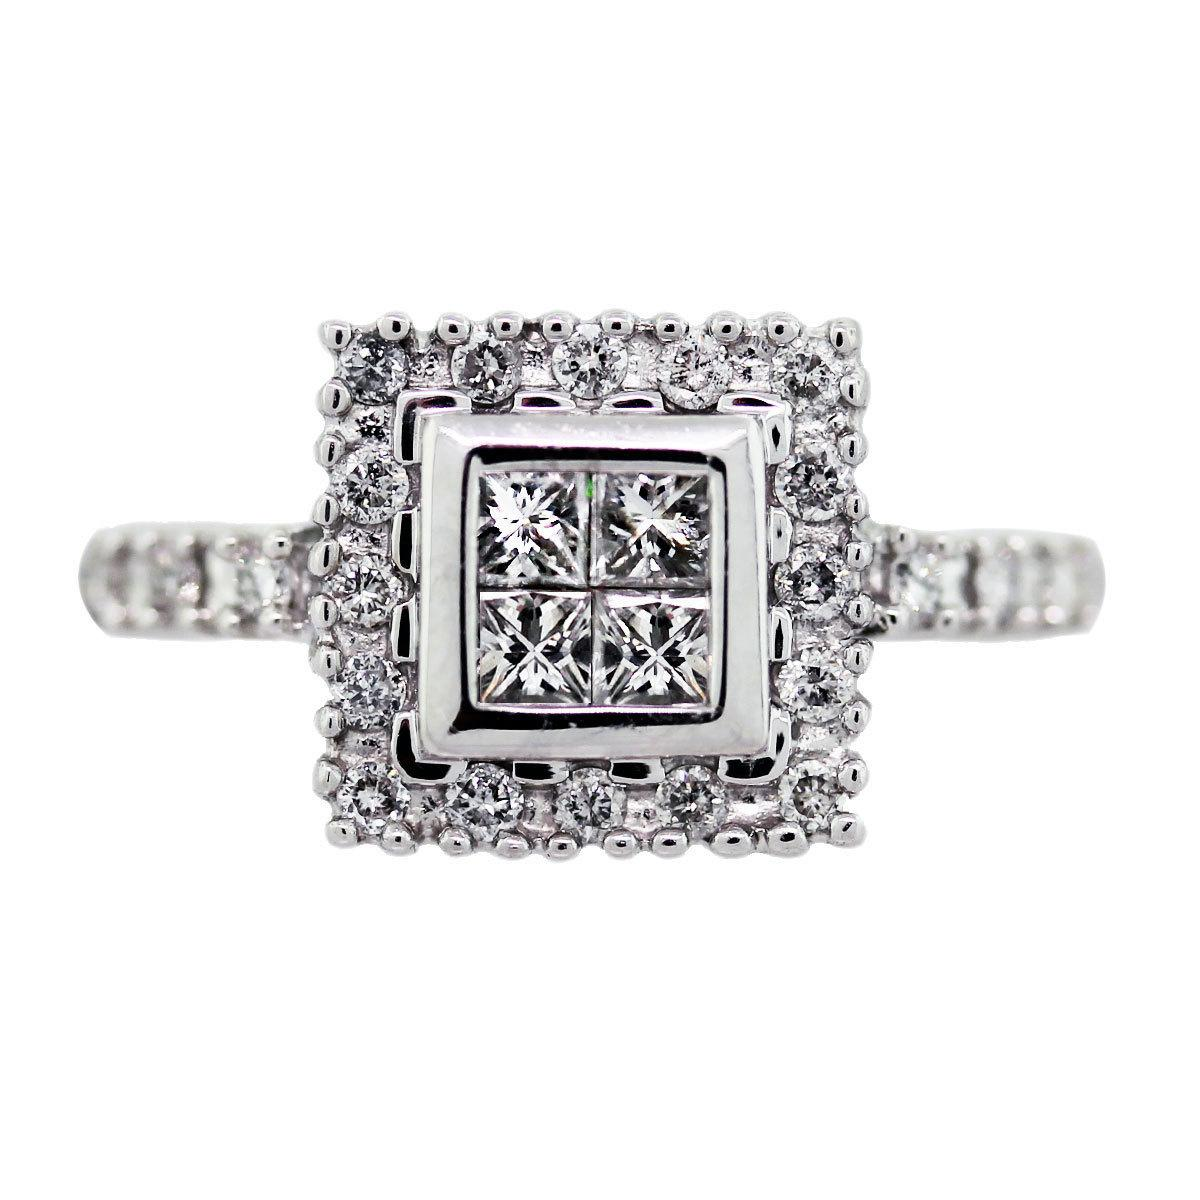 princess cut engagement ring under 1000, engagement ring princess cut